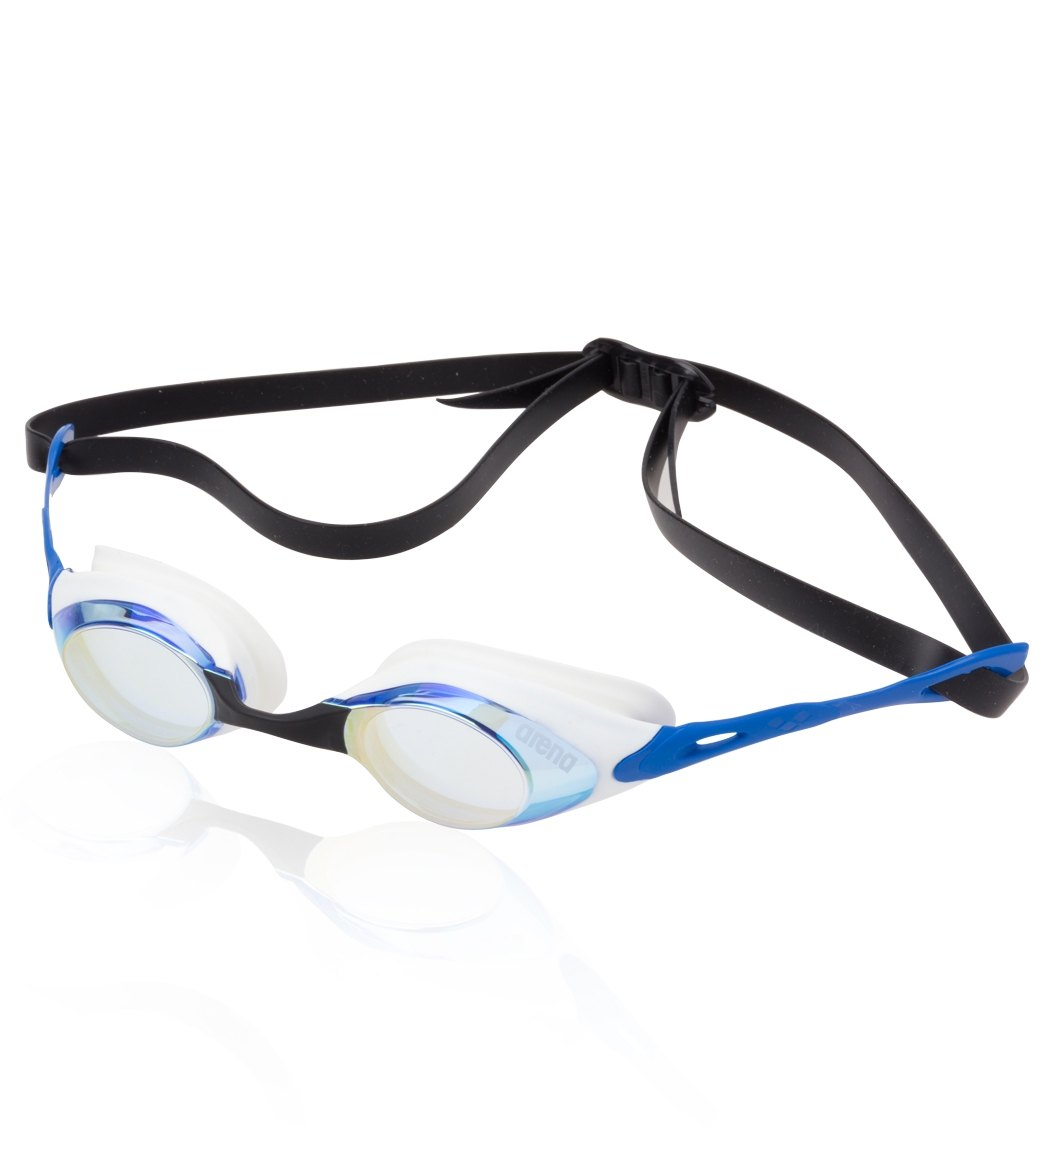 arena cobra  Arena Cobra Mirror Goggle at  - Free Shipping